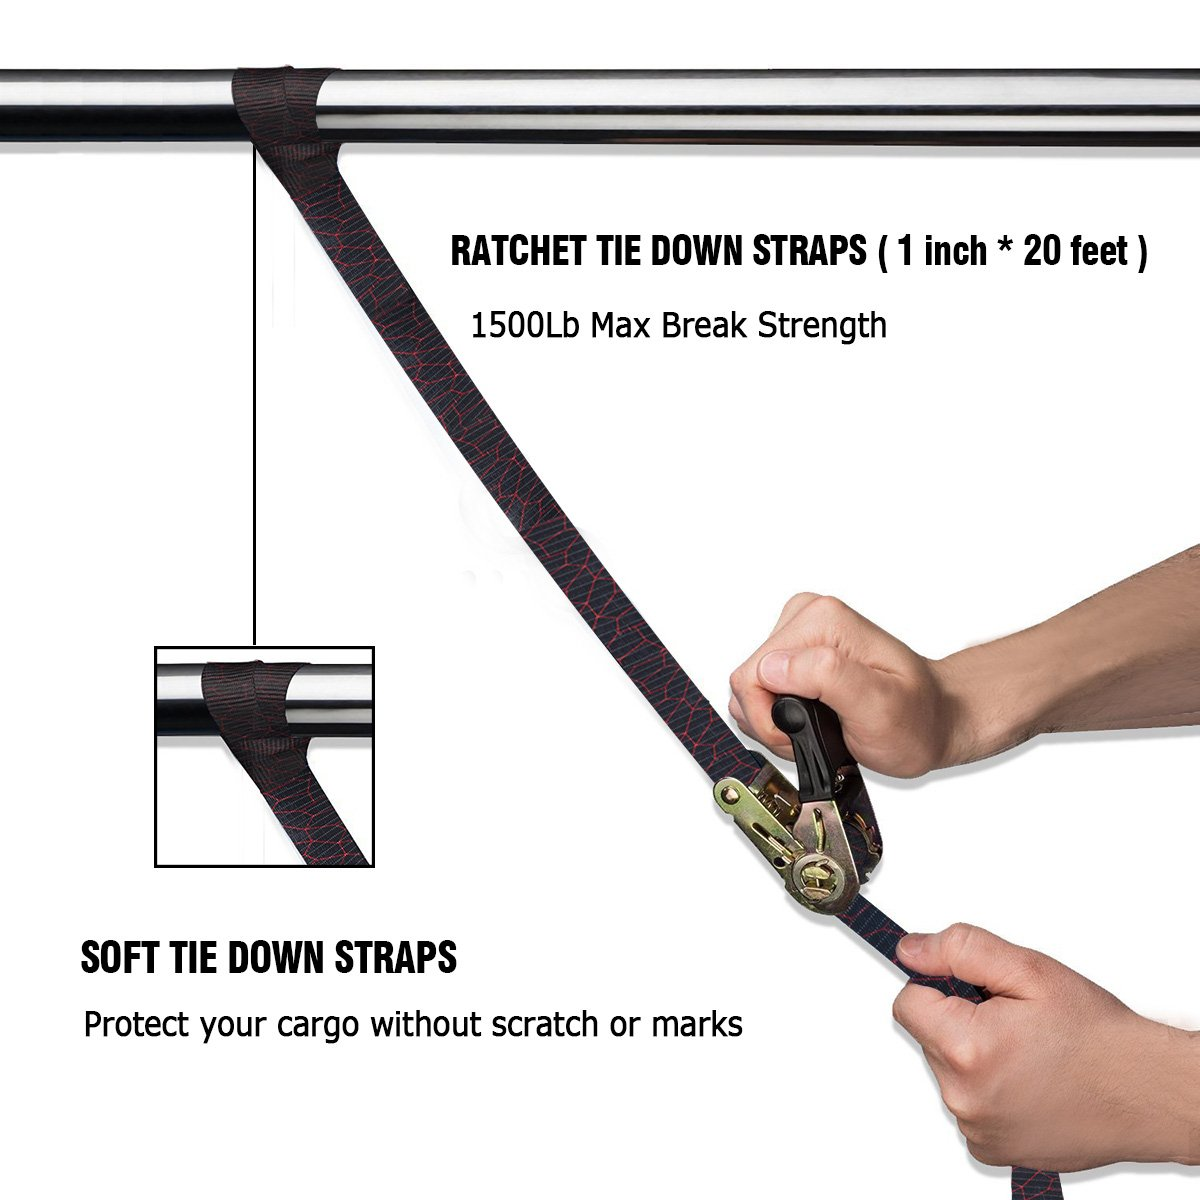 Audew 4 x Ratchet Tie-Down Straps 25mm x 6M Heavy Duty Ratchet Strap Endless Loop Lashing Straps Webbing Strap Cargo Tie-Downs for Cam Buckles Luggage Trailer Household Goods Car